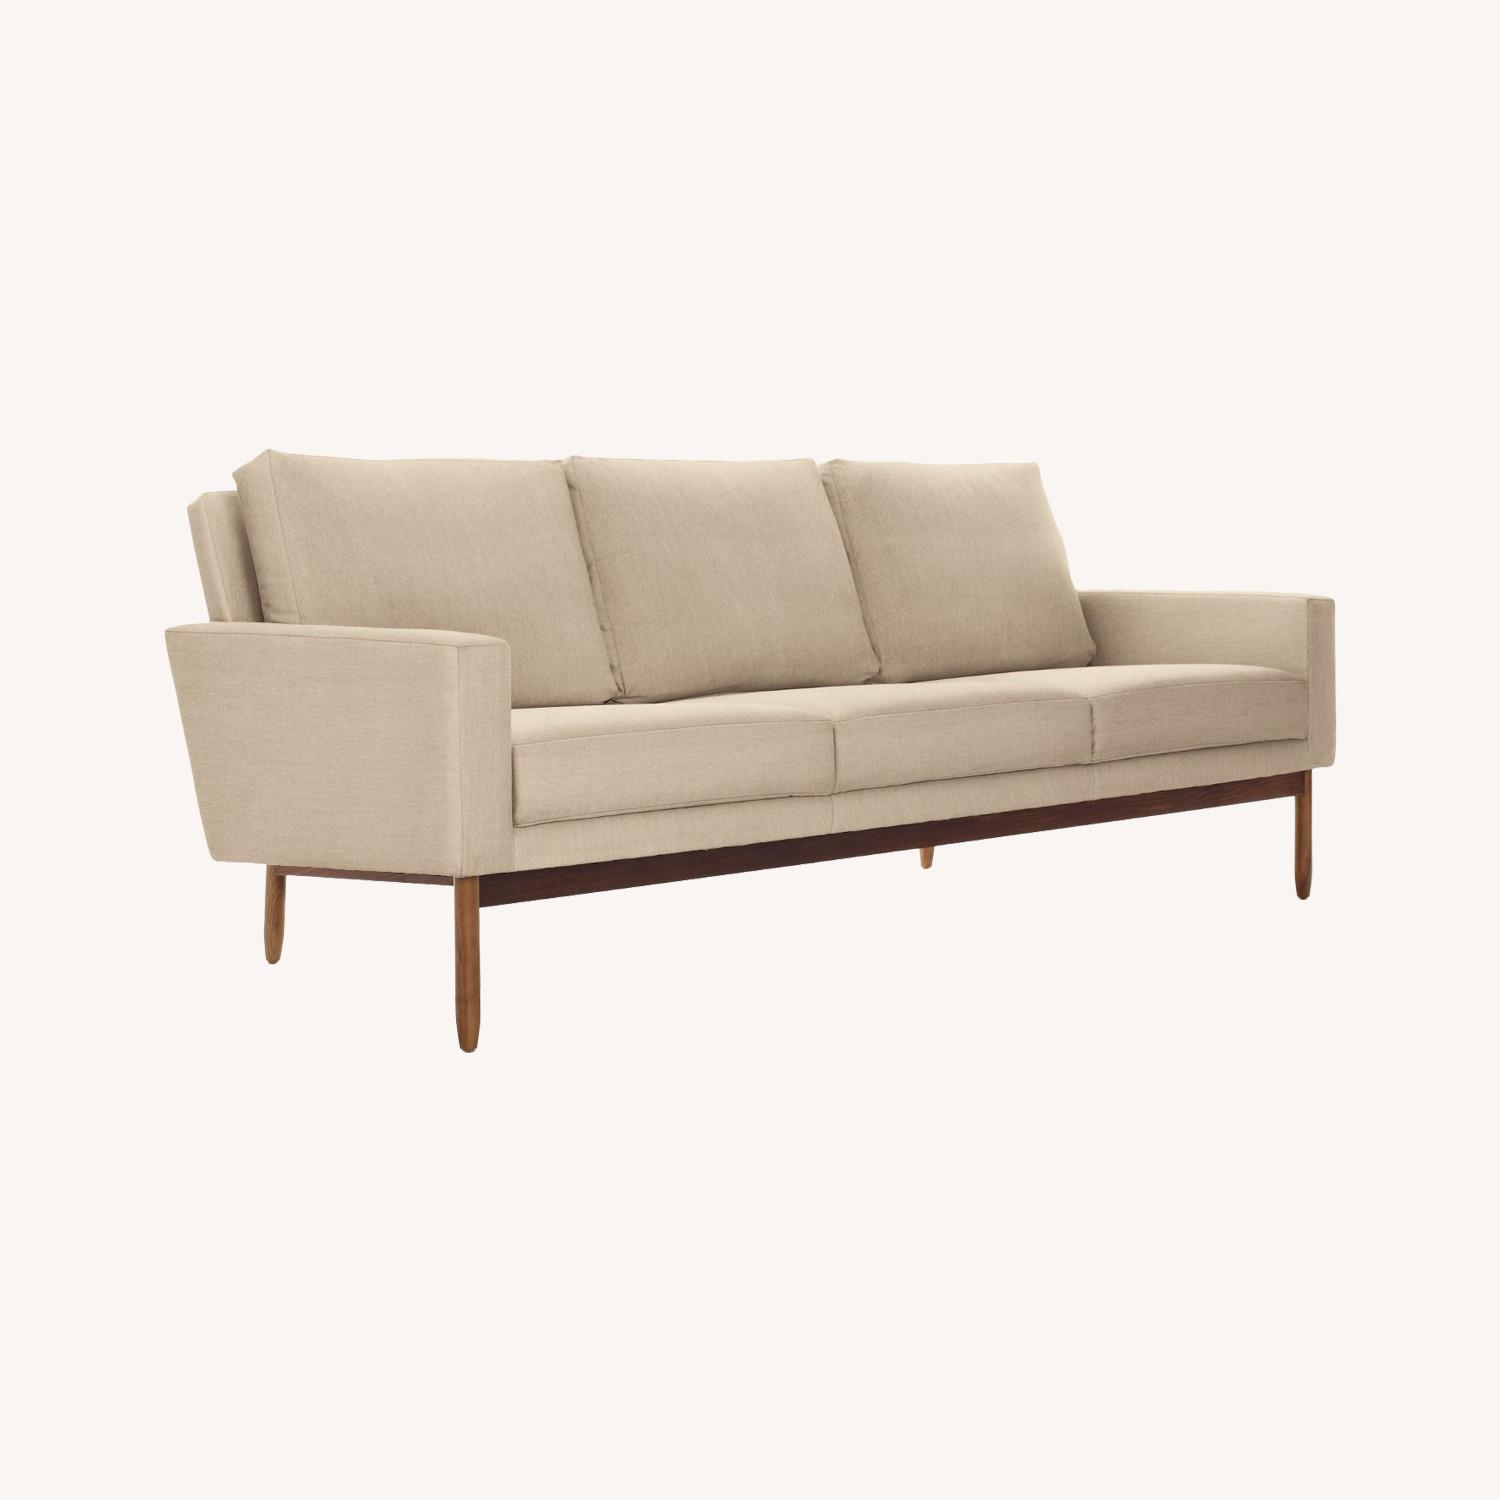 Design Within Reach Raleigh Sofa - image-0